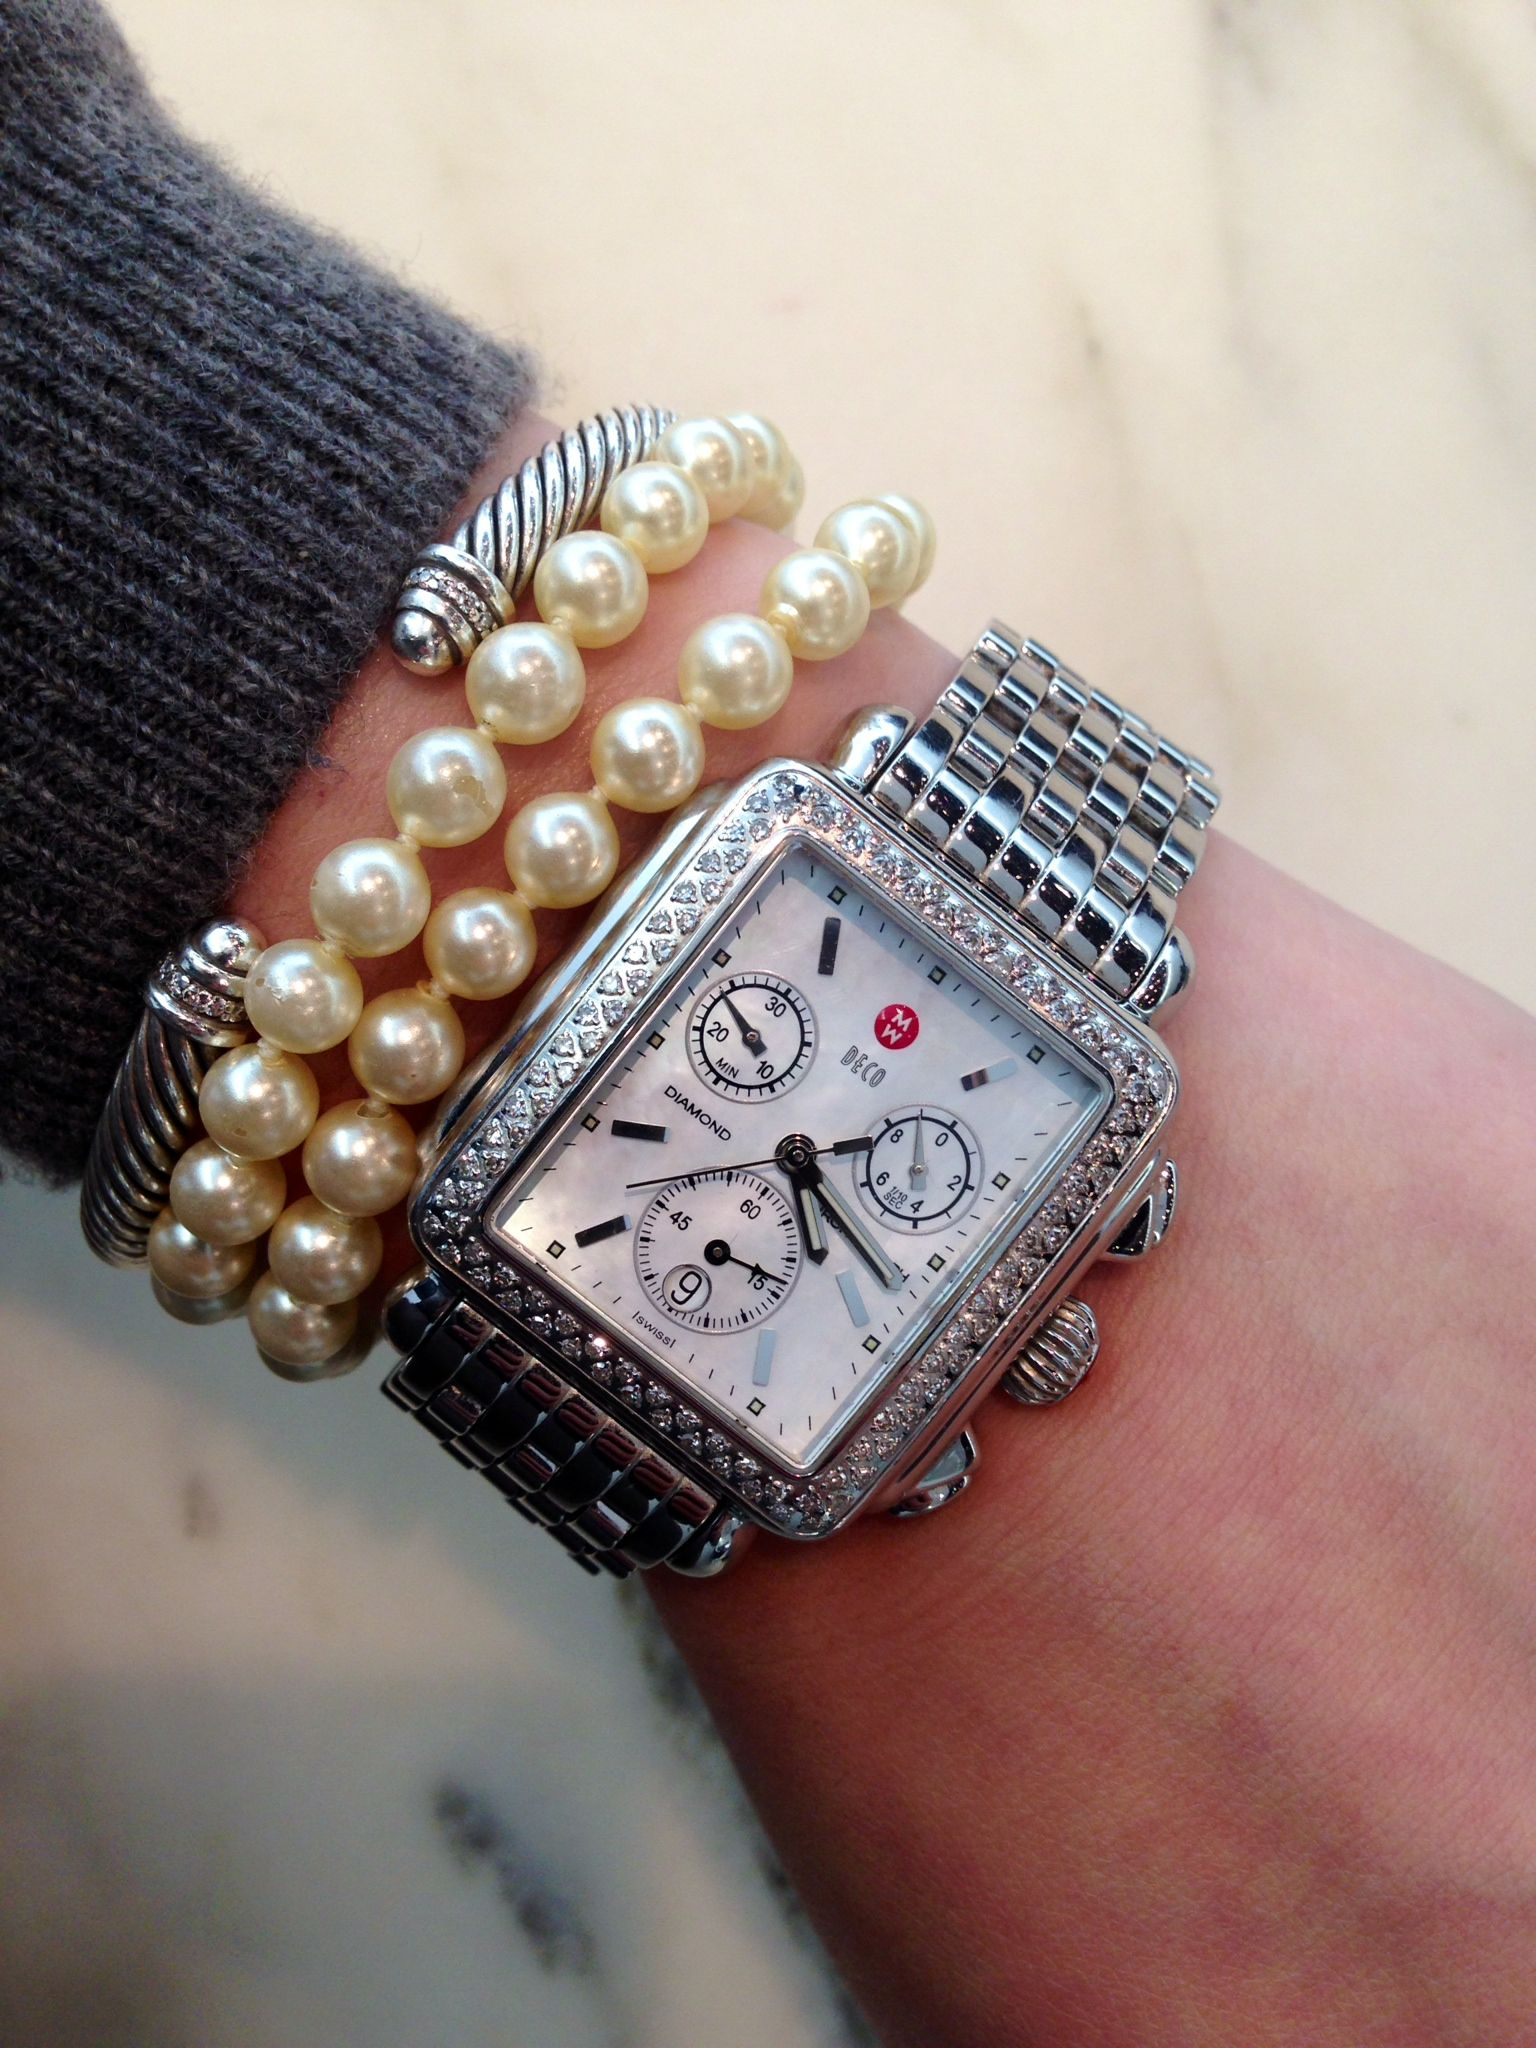 7b11e7d23 Michele watch, David Yurman, and pearls a girl can dream right ...